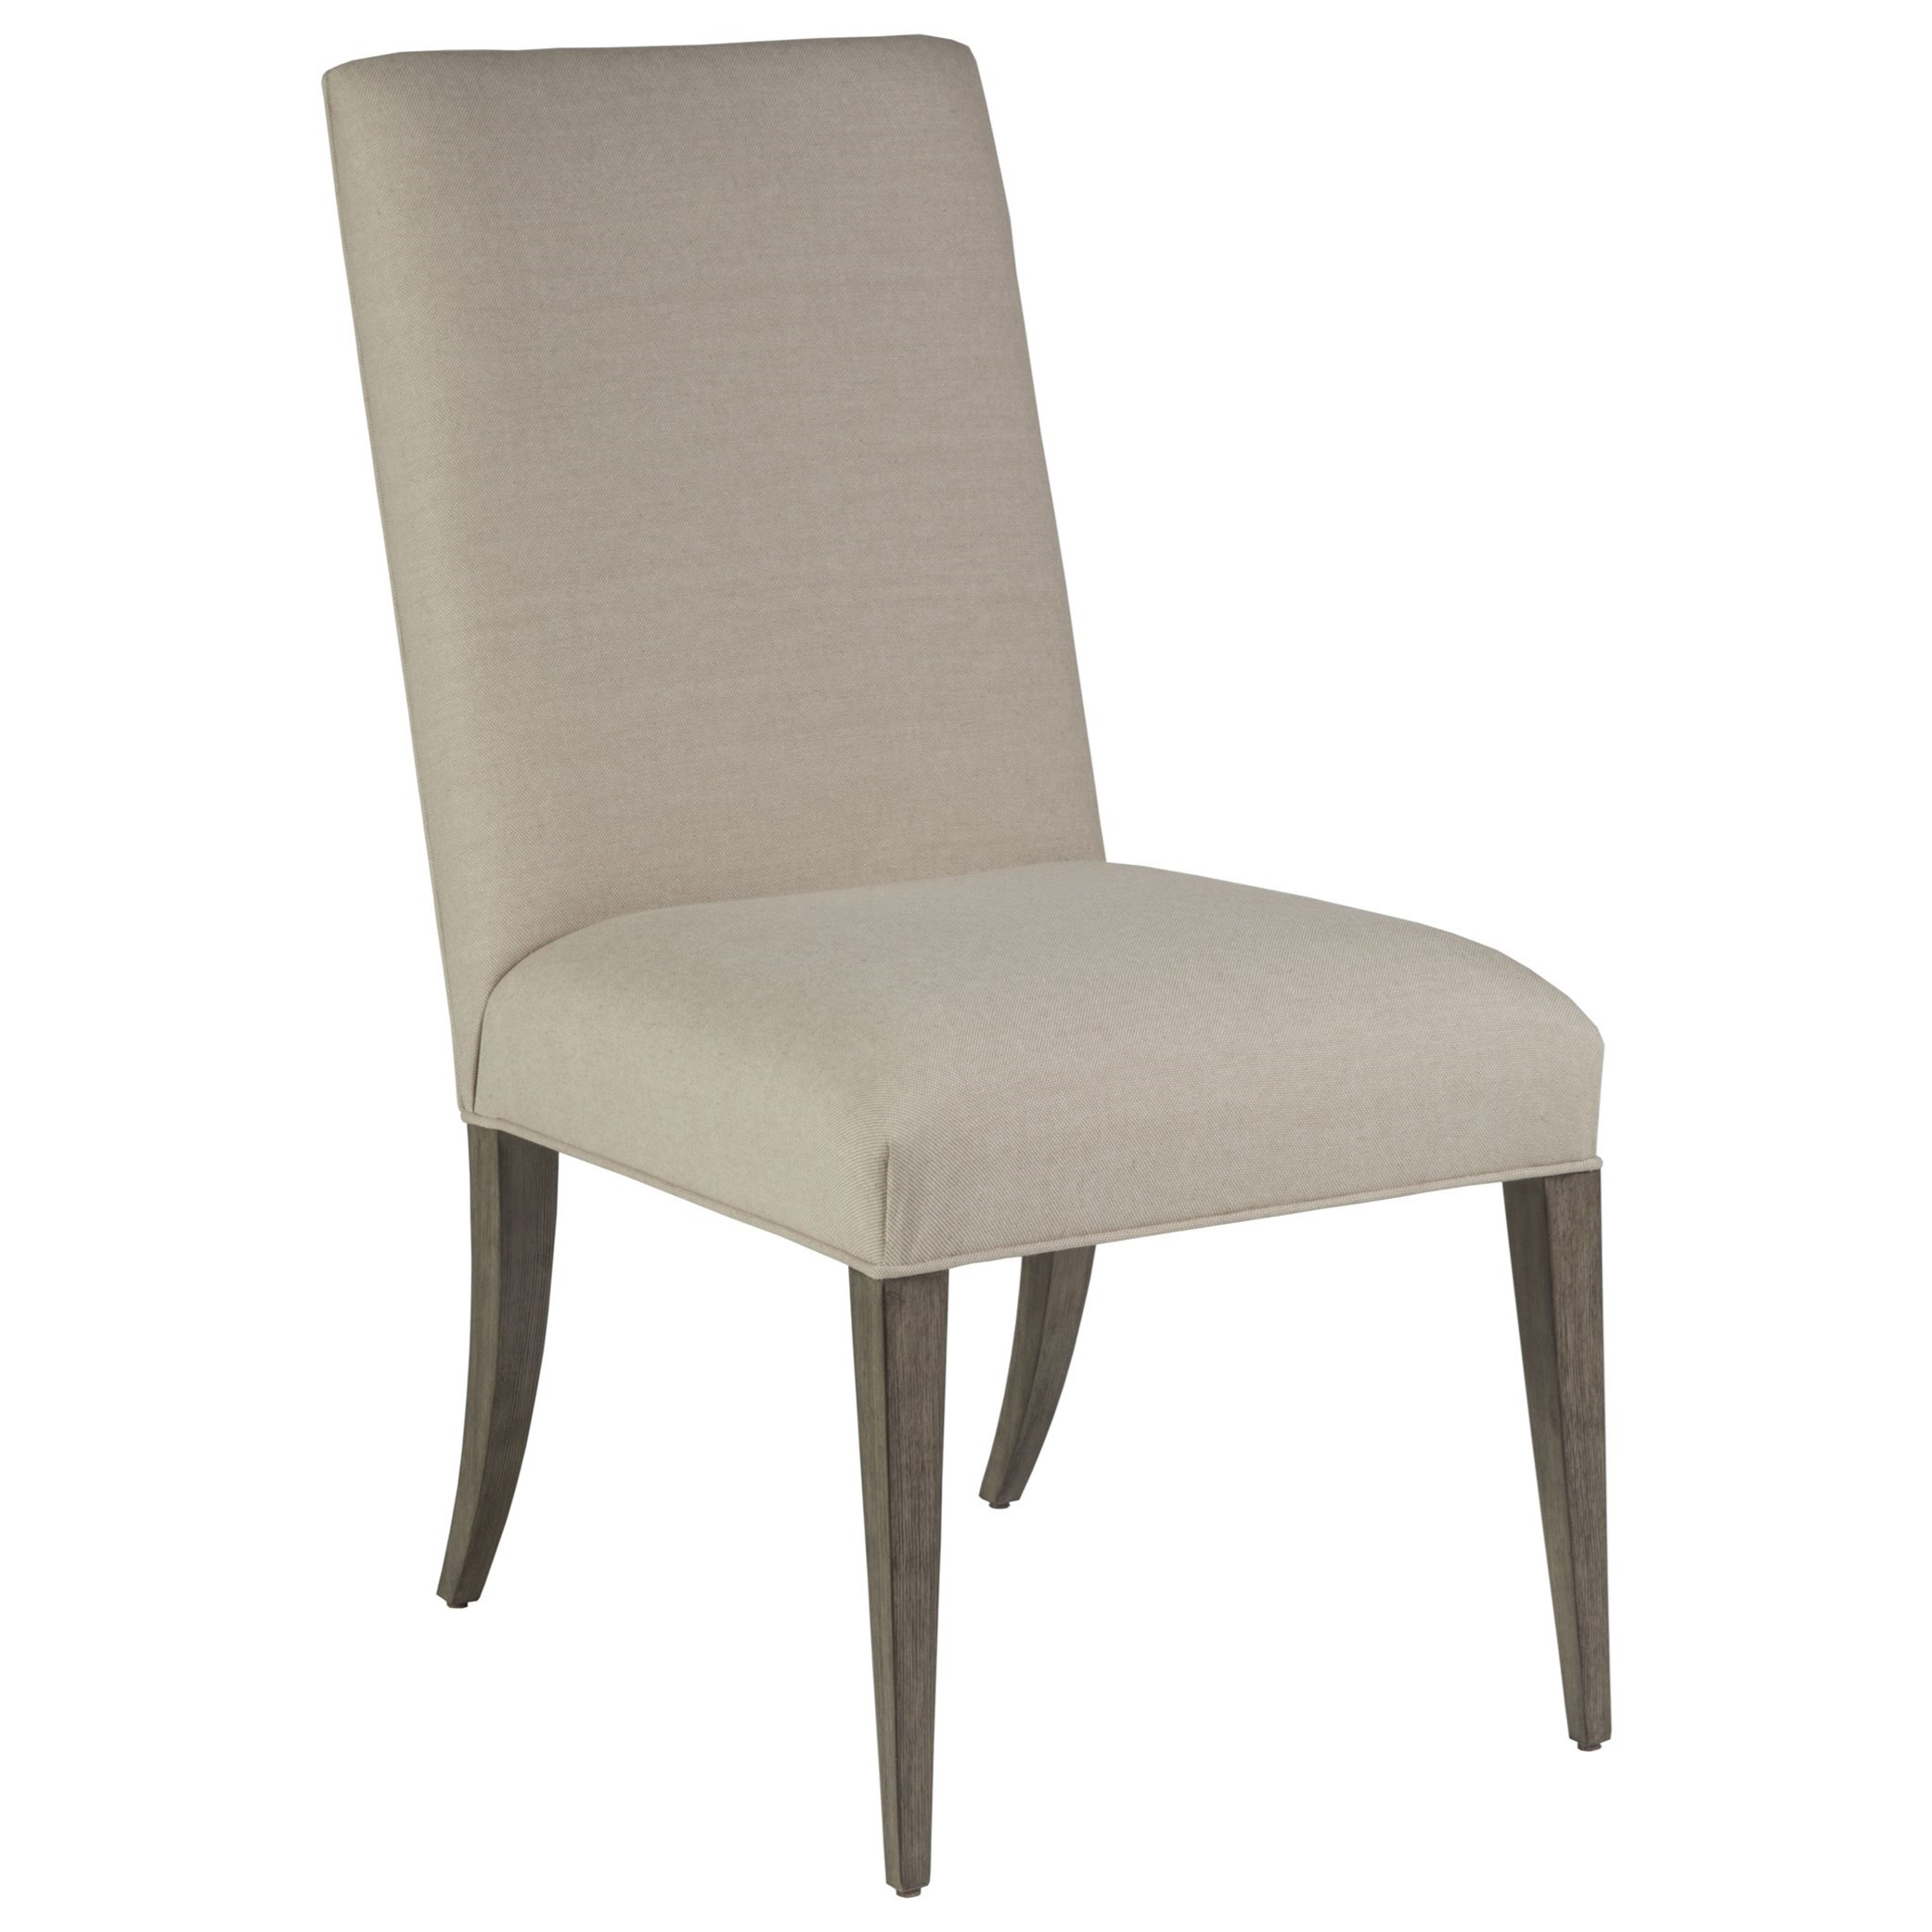 Cohesion Madox Upholstered Side Chair by Artistica at Sprintz Furniture